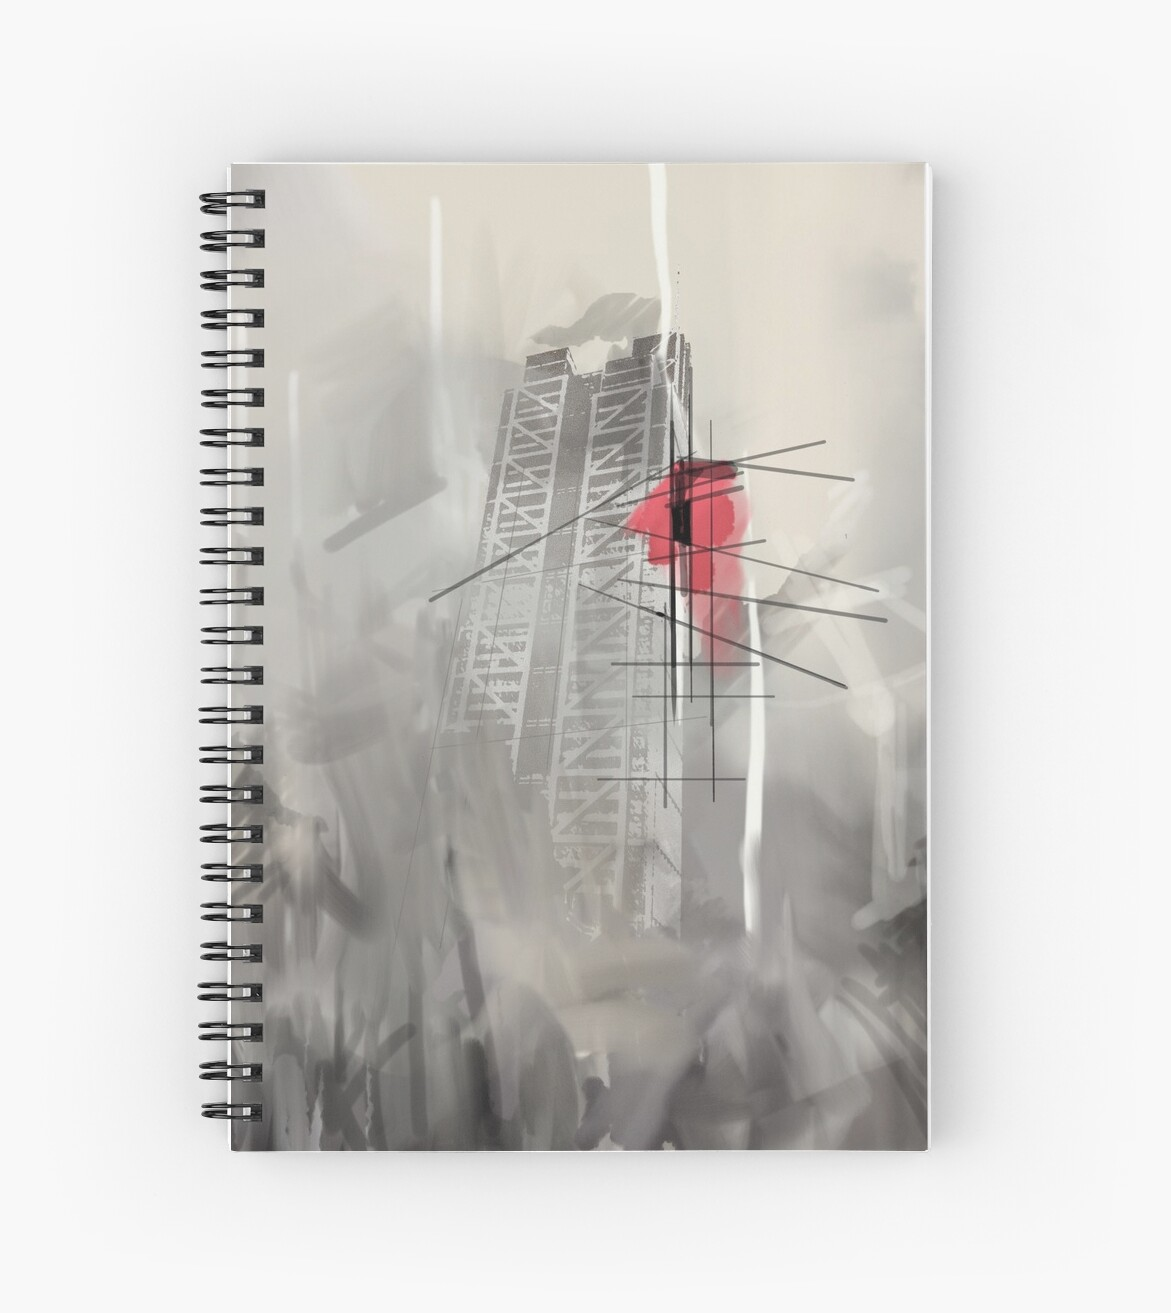 London skyline grey abstract painting spiral notebook by sukhpal grewal